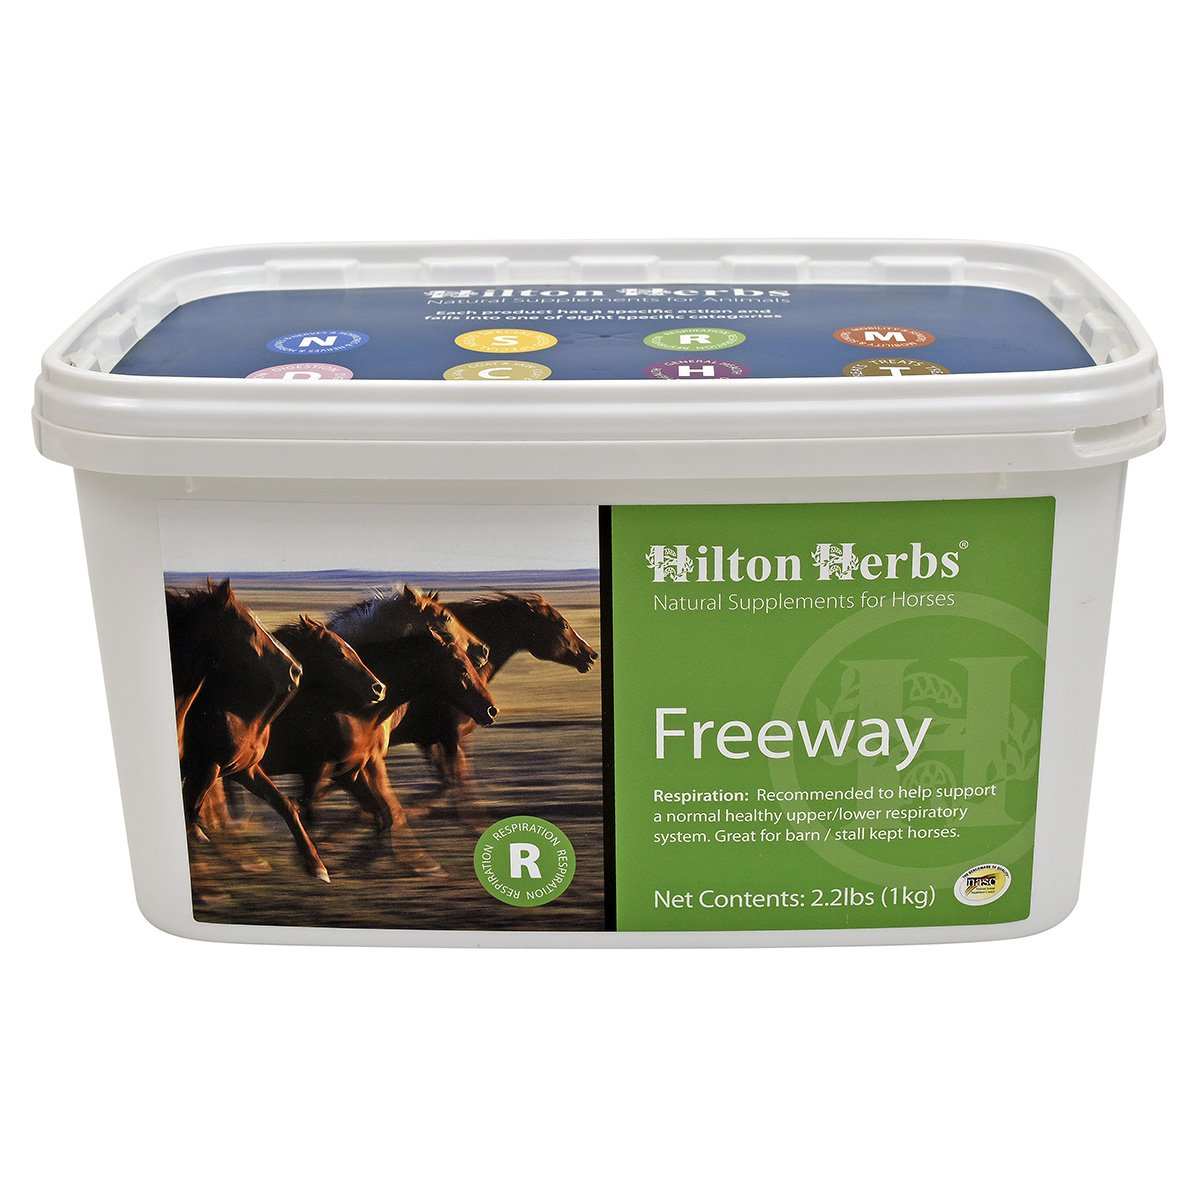 Hilton Herbs Freeway Herbal Supplement for Healthy Respiratory System for Horses, 1kg Tub by Hilton Herbs